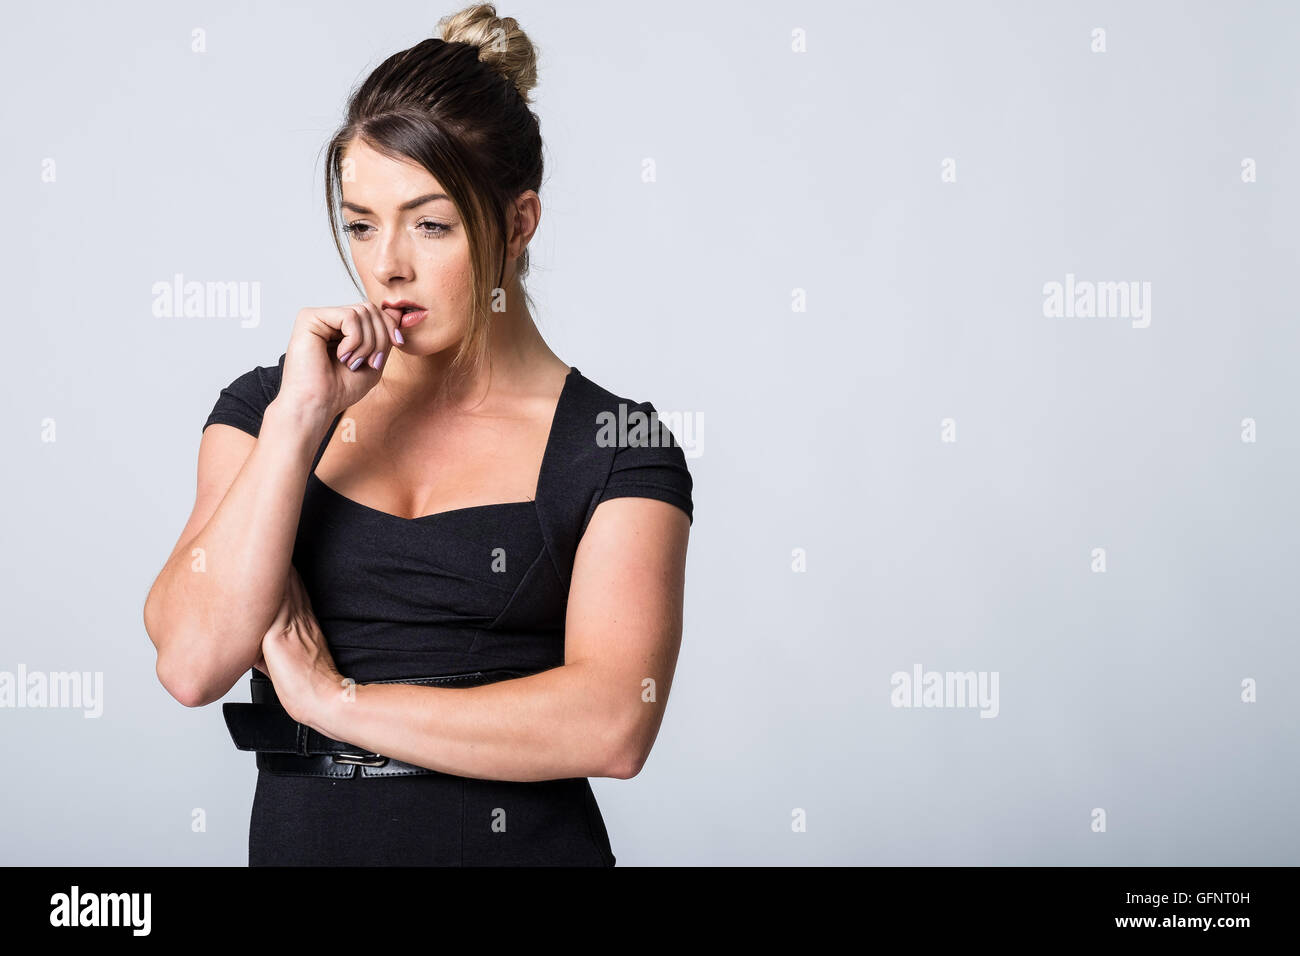 WOrried woman in a black dress - Stock Image